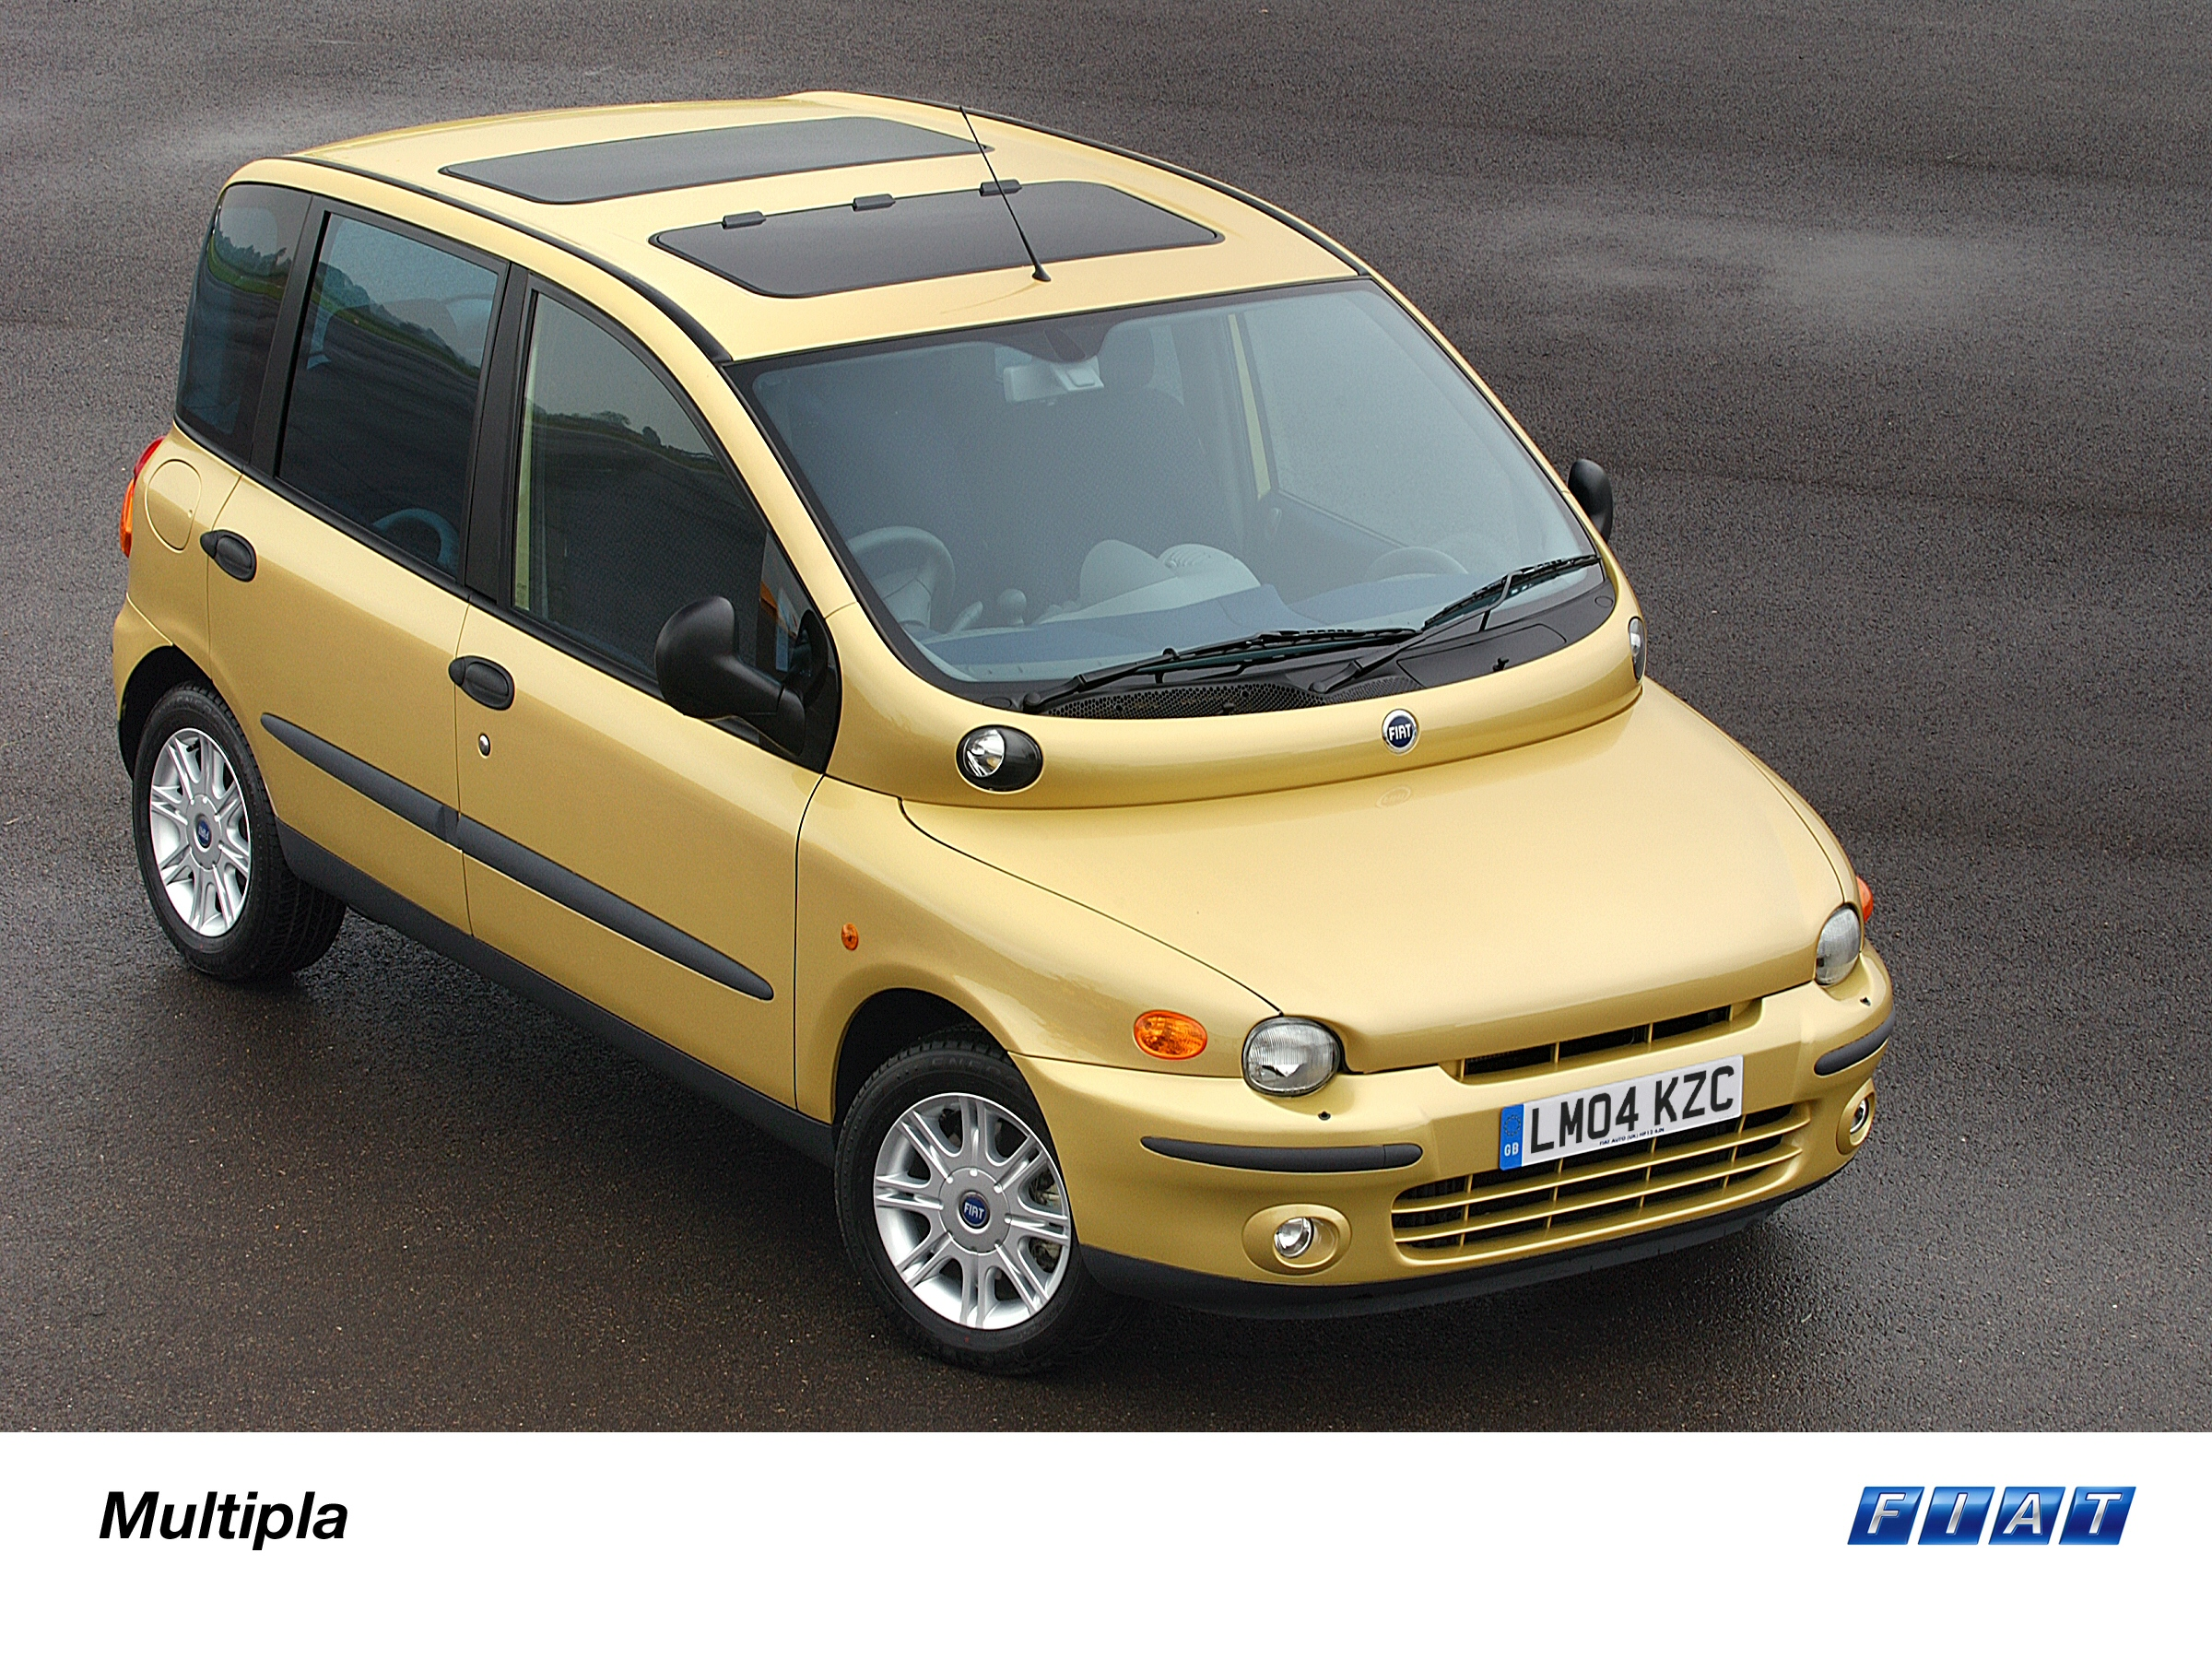 Multipla Is Mpv Mastermind 2004 Press Fiat Group